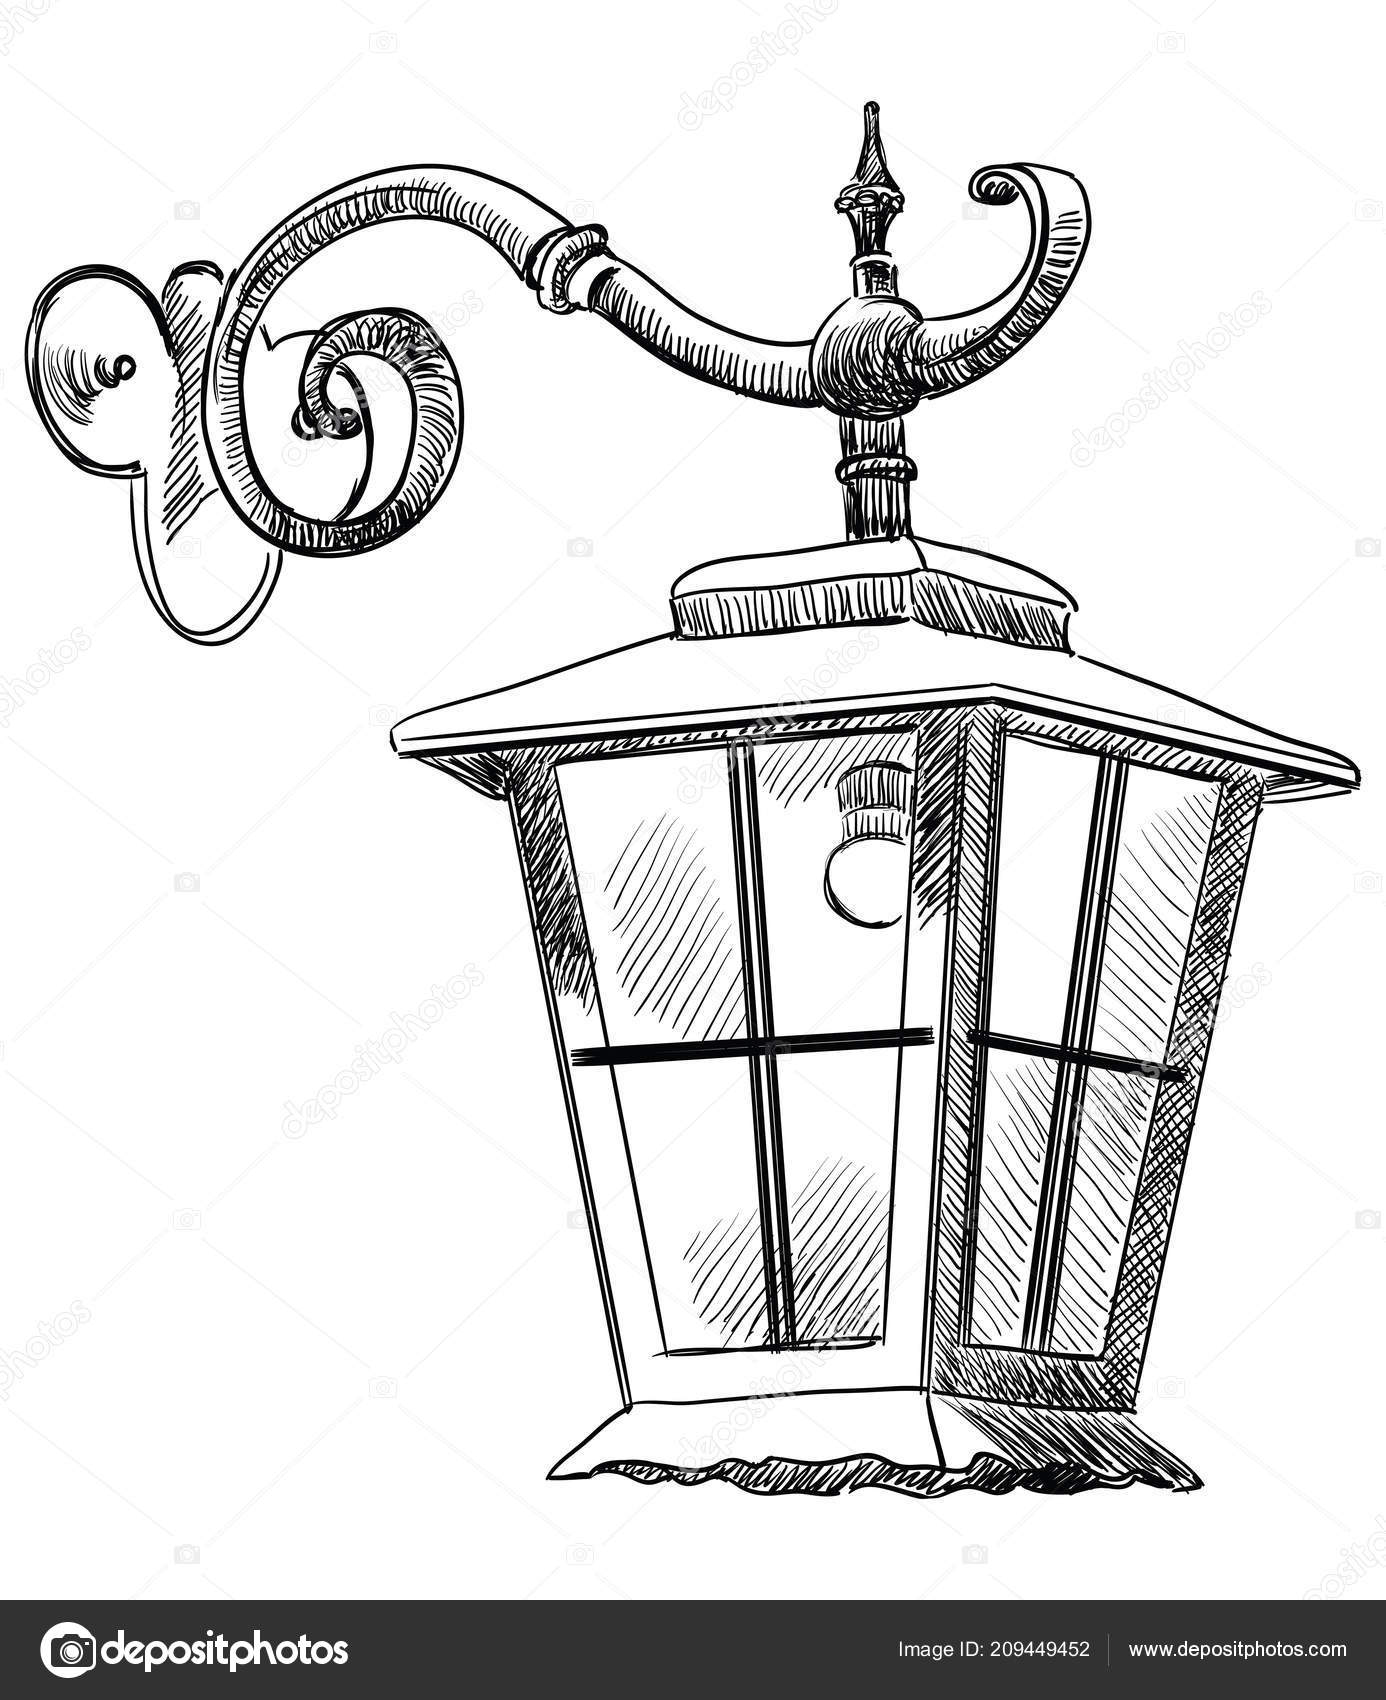 Hand Drawing Old Hanging Lantern Vector Monochrome Illustration Black Color Stock Vector Alinart 209449452